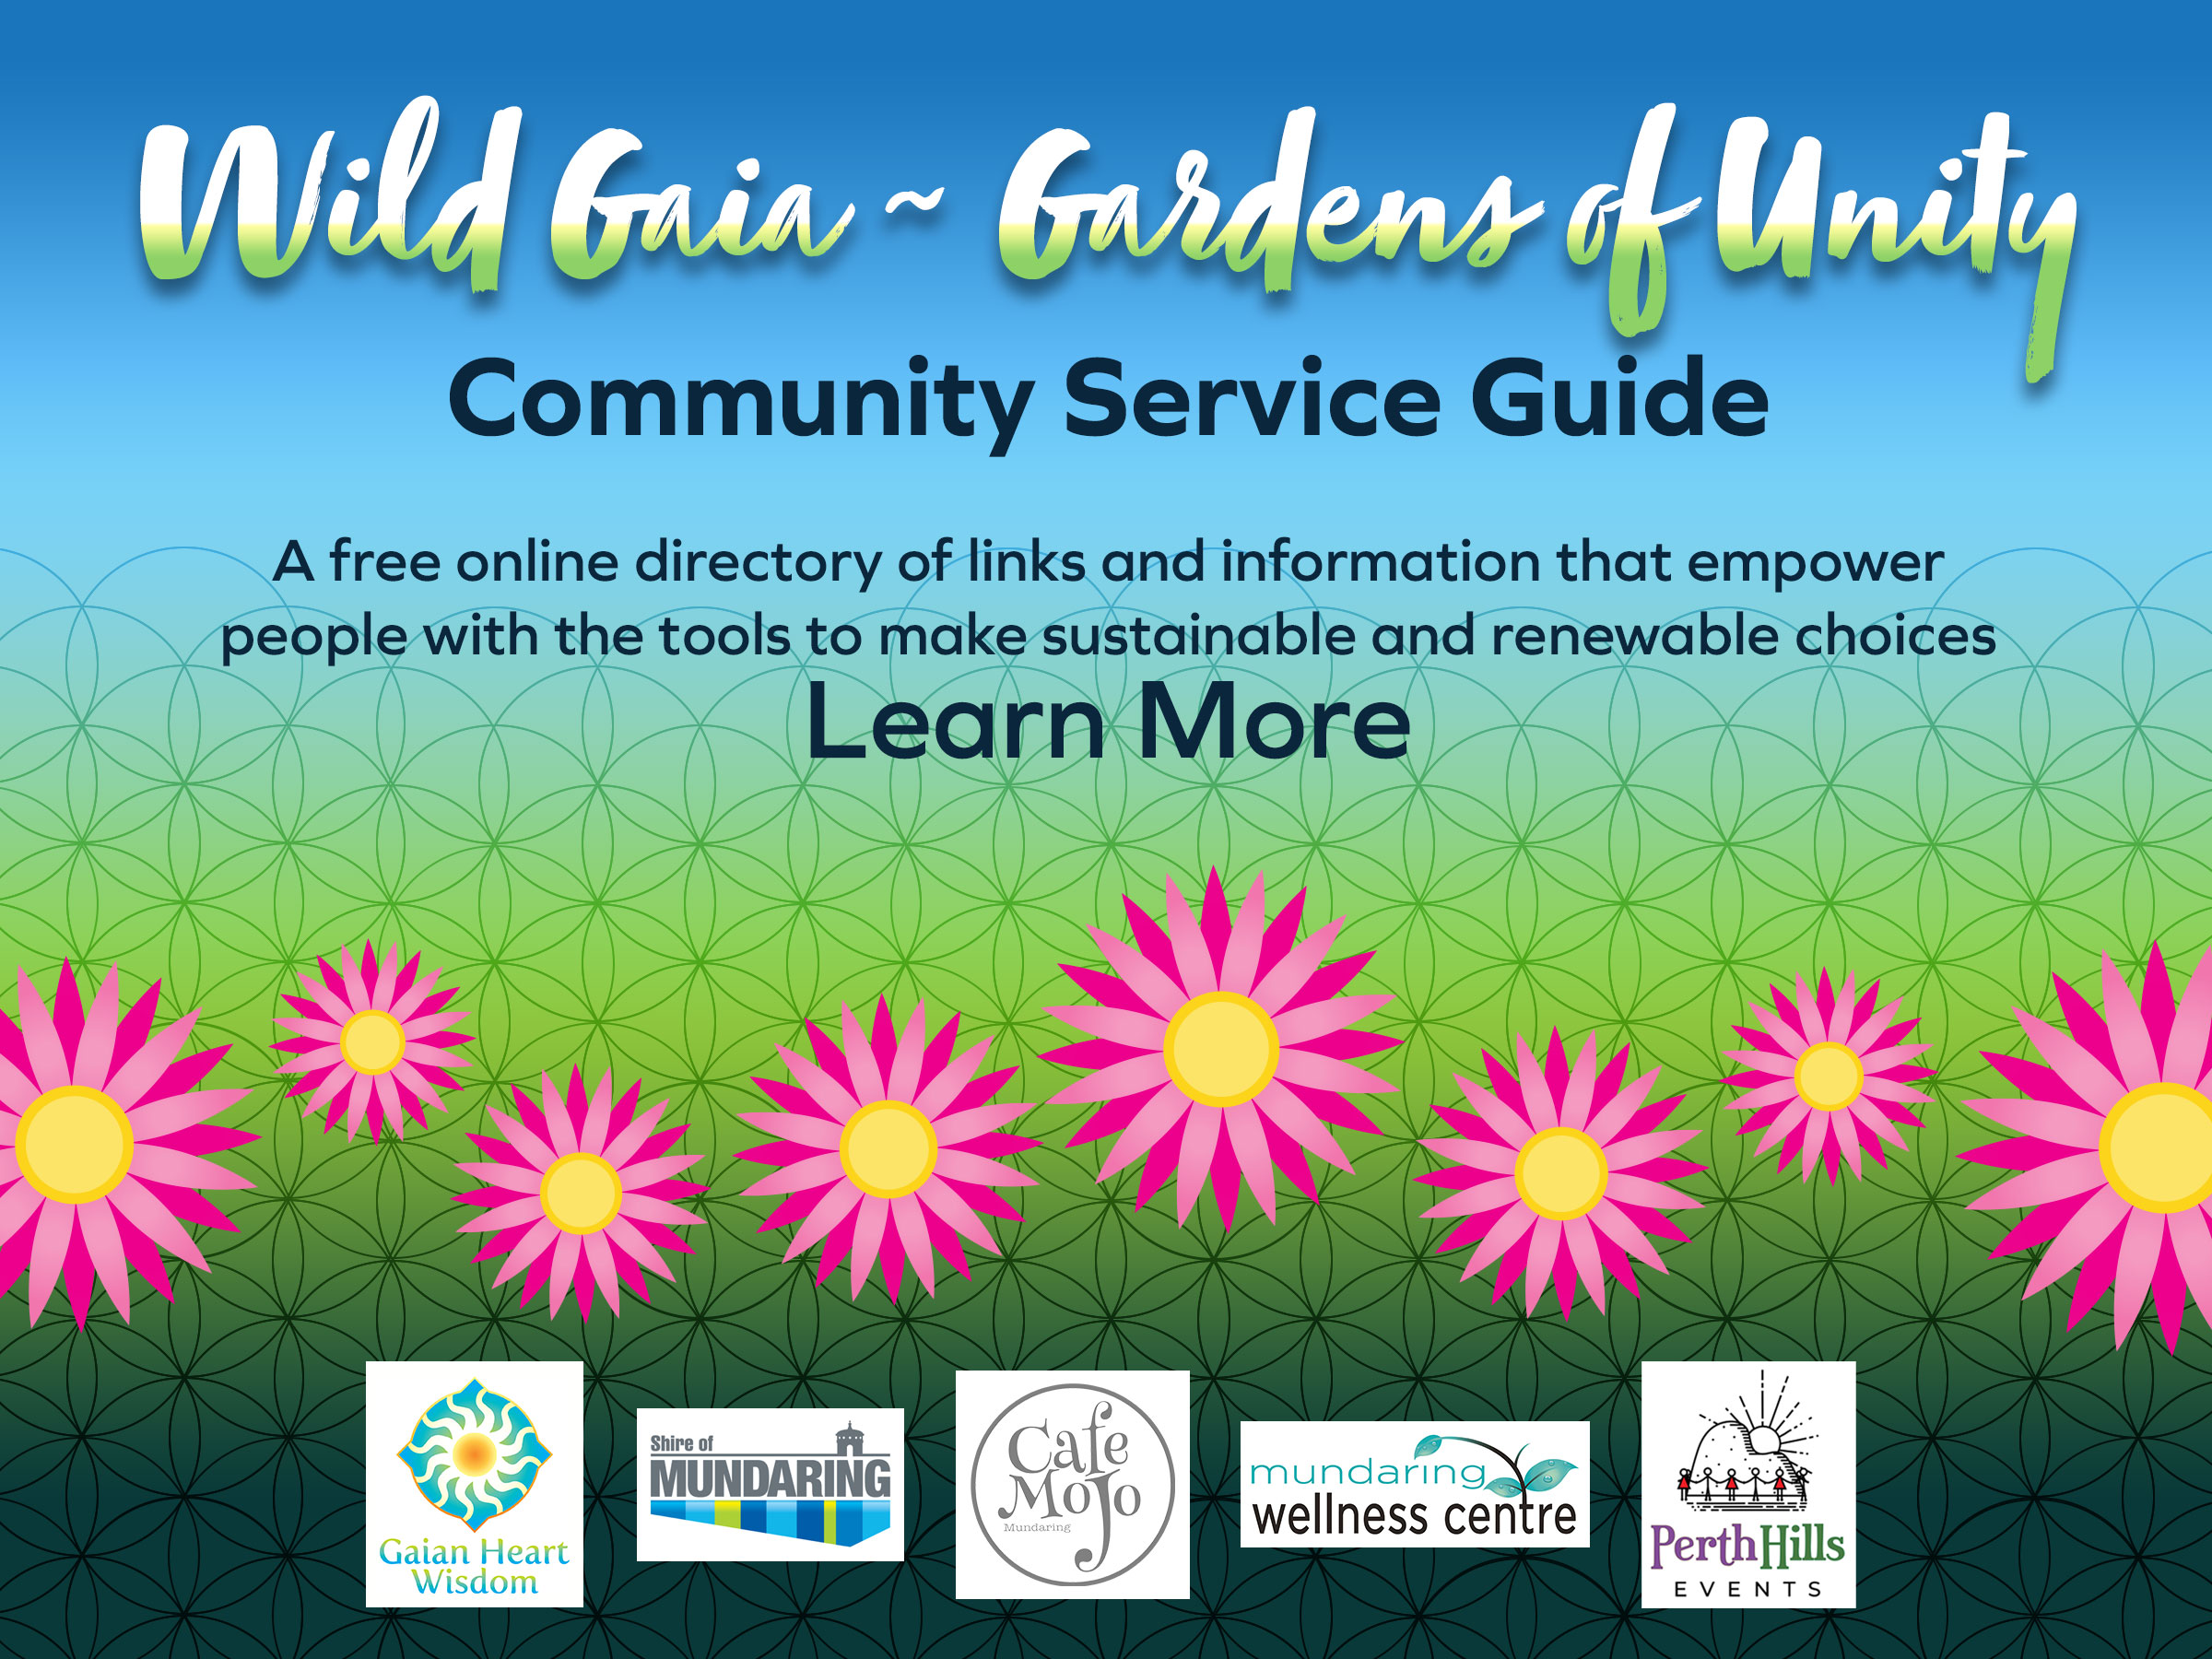 Wild Gaia - Gardens of Unity Community Service Guide. A free online directory of links and information that empower people with the tools to make sustainable and renewable choices.